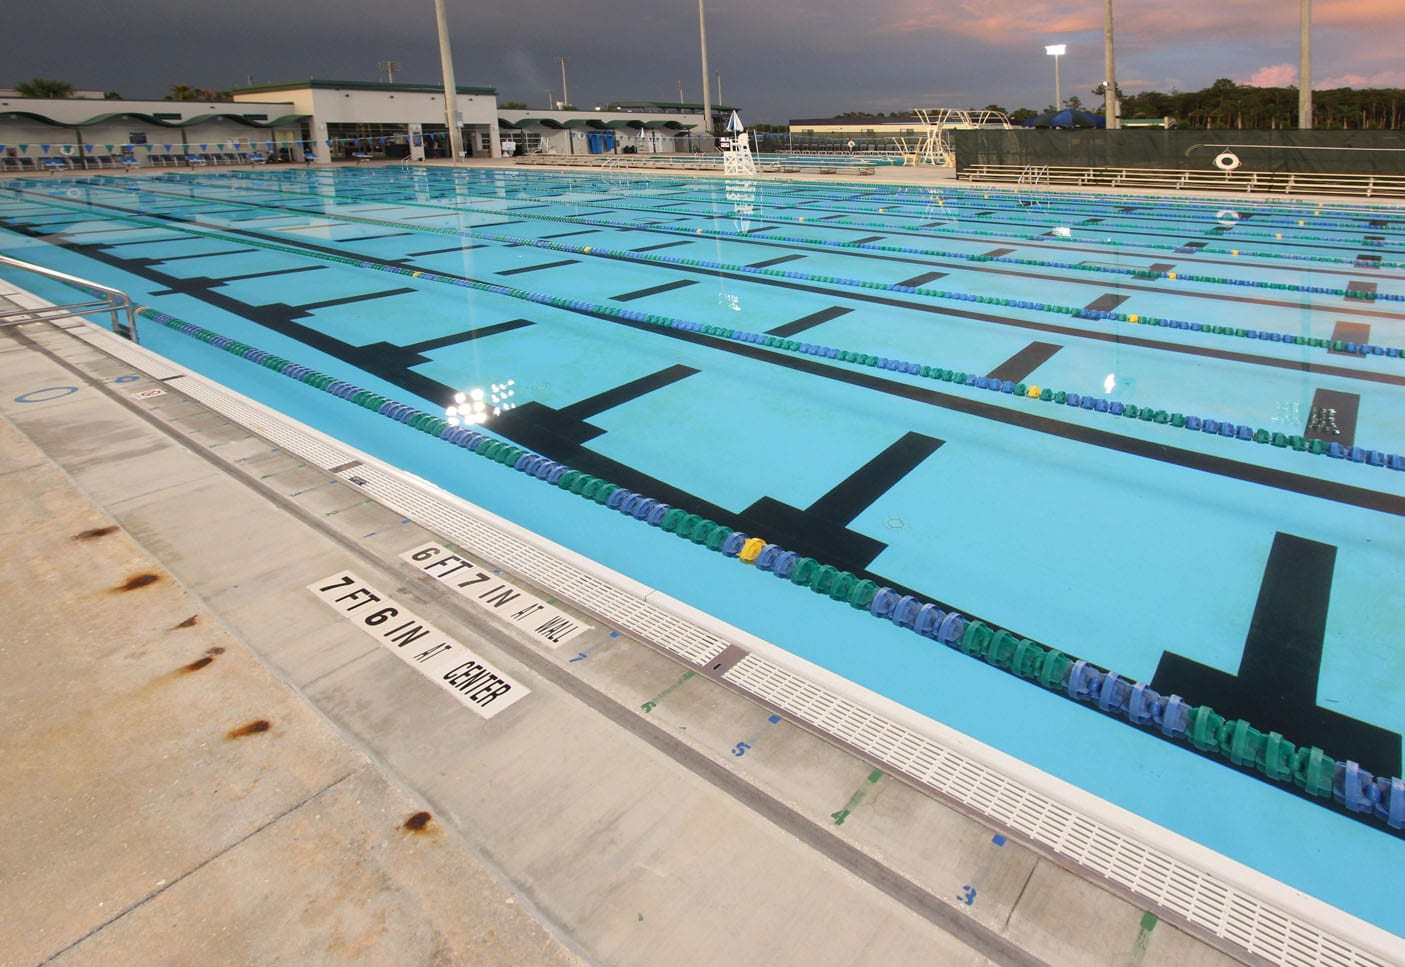 FGCU_Aquatic_Center_0002_Layer 2